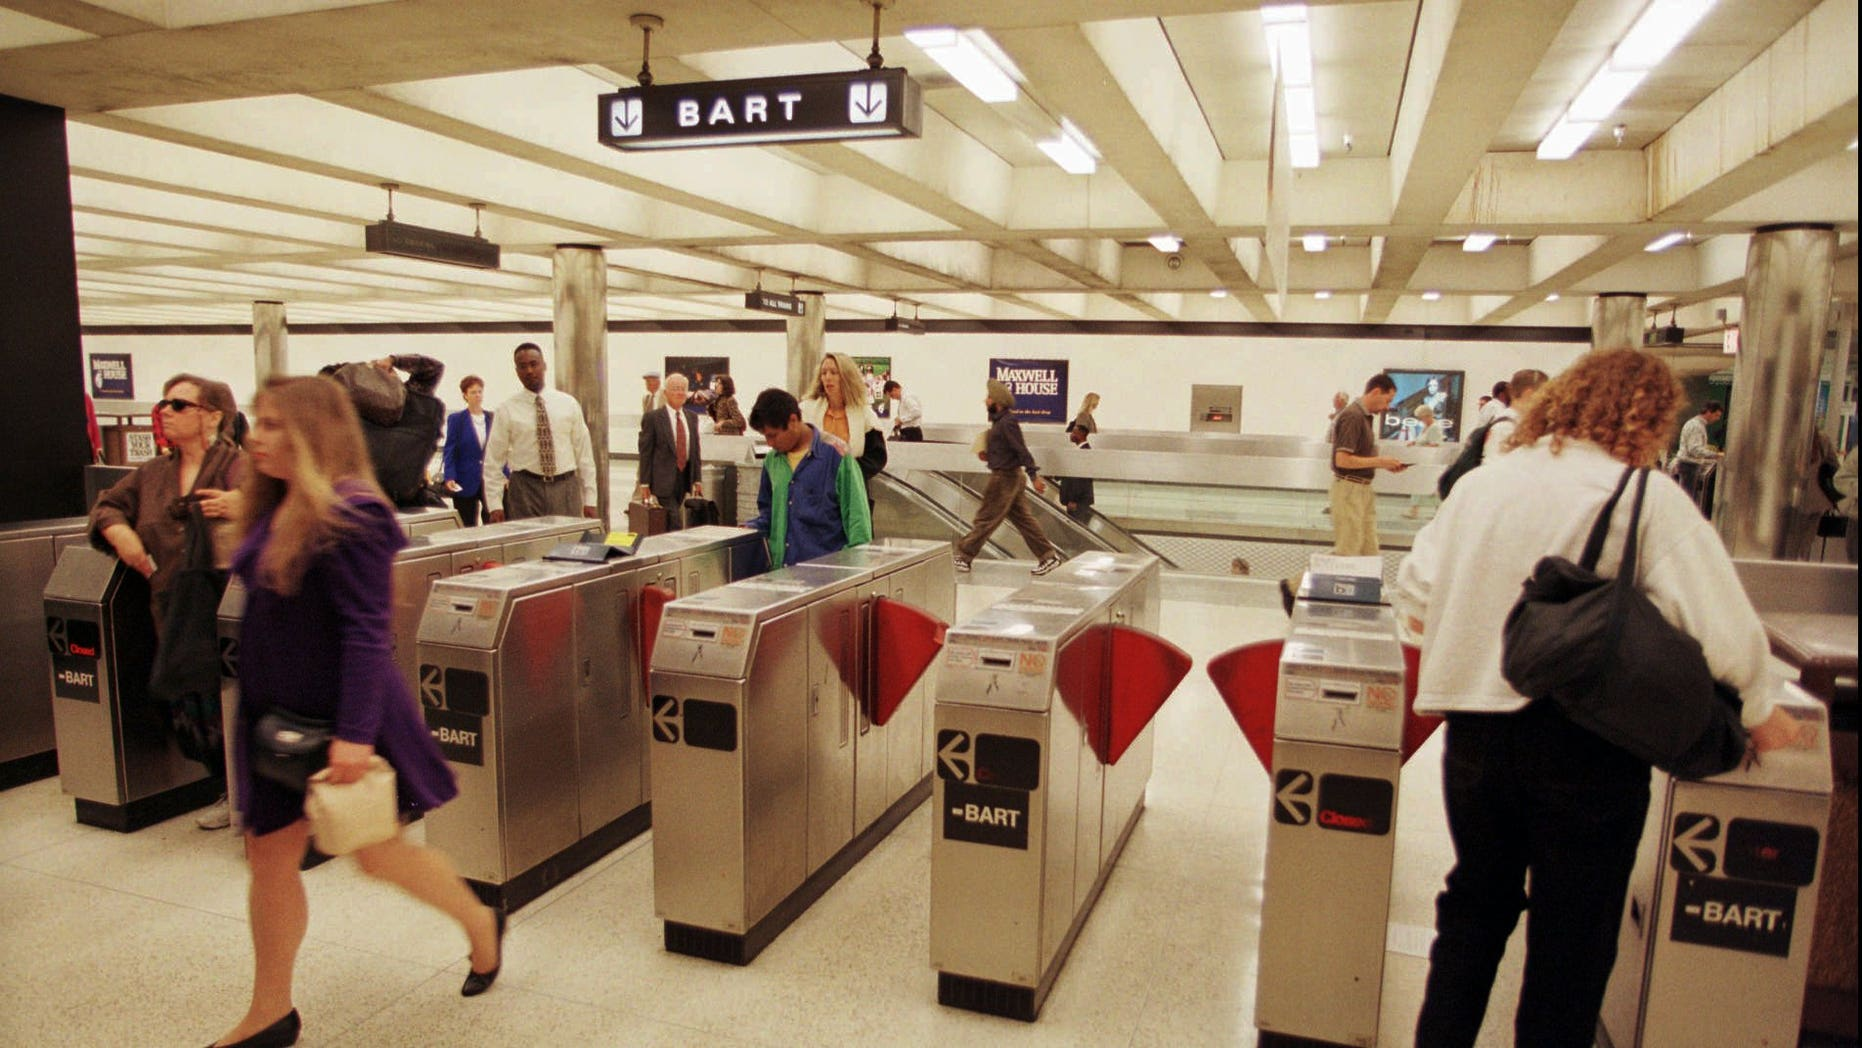 Commuters enter and exit a Bay Area Rapid Transit station in San Francisco's financial district.